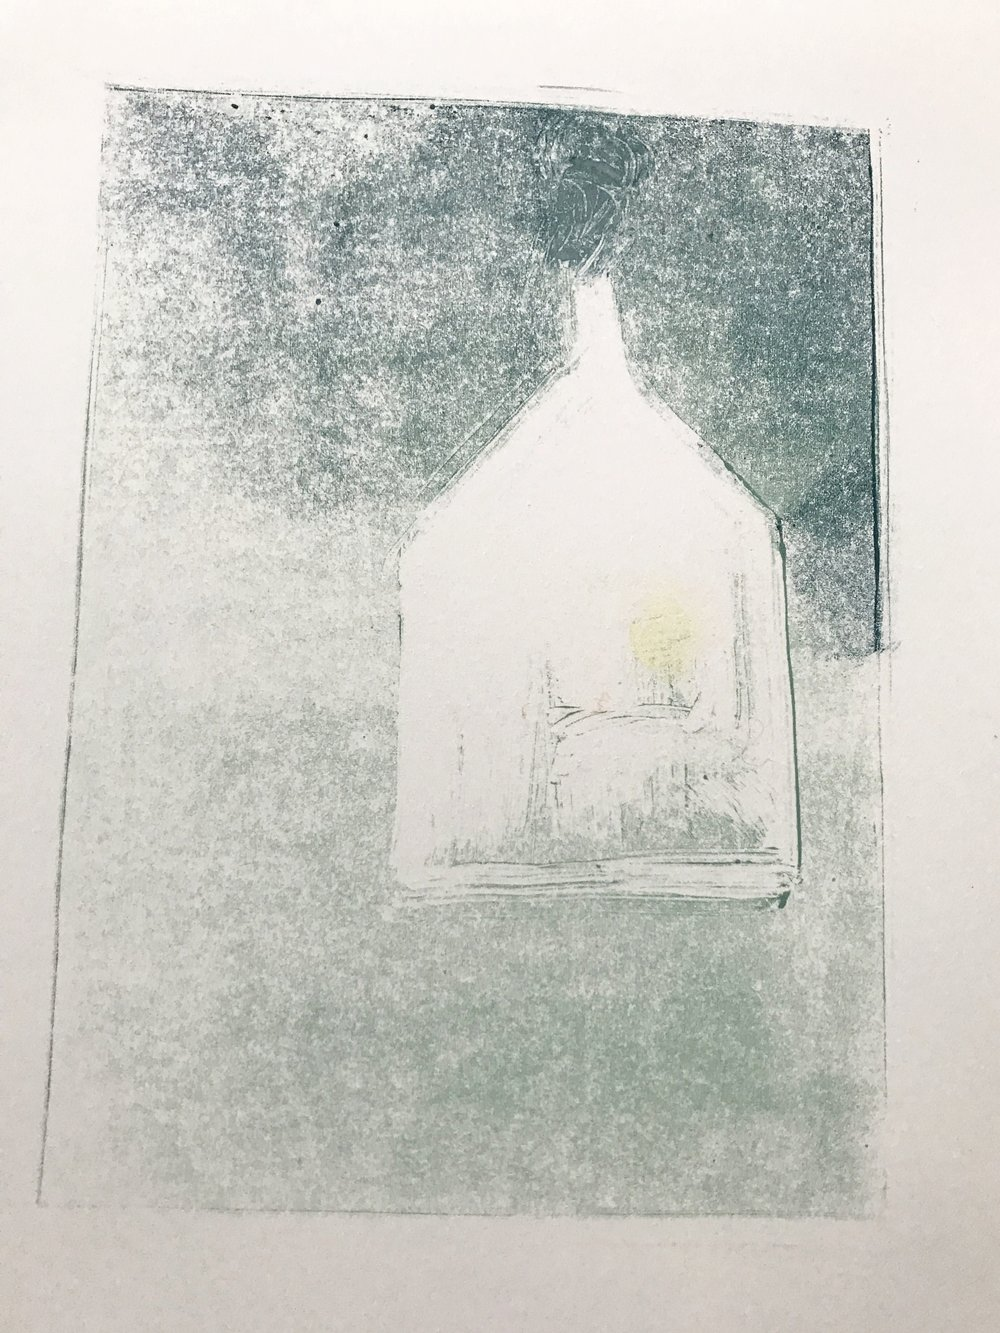 A print awaiting pencil marks